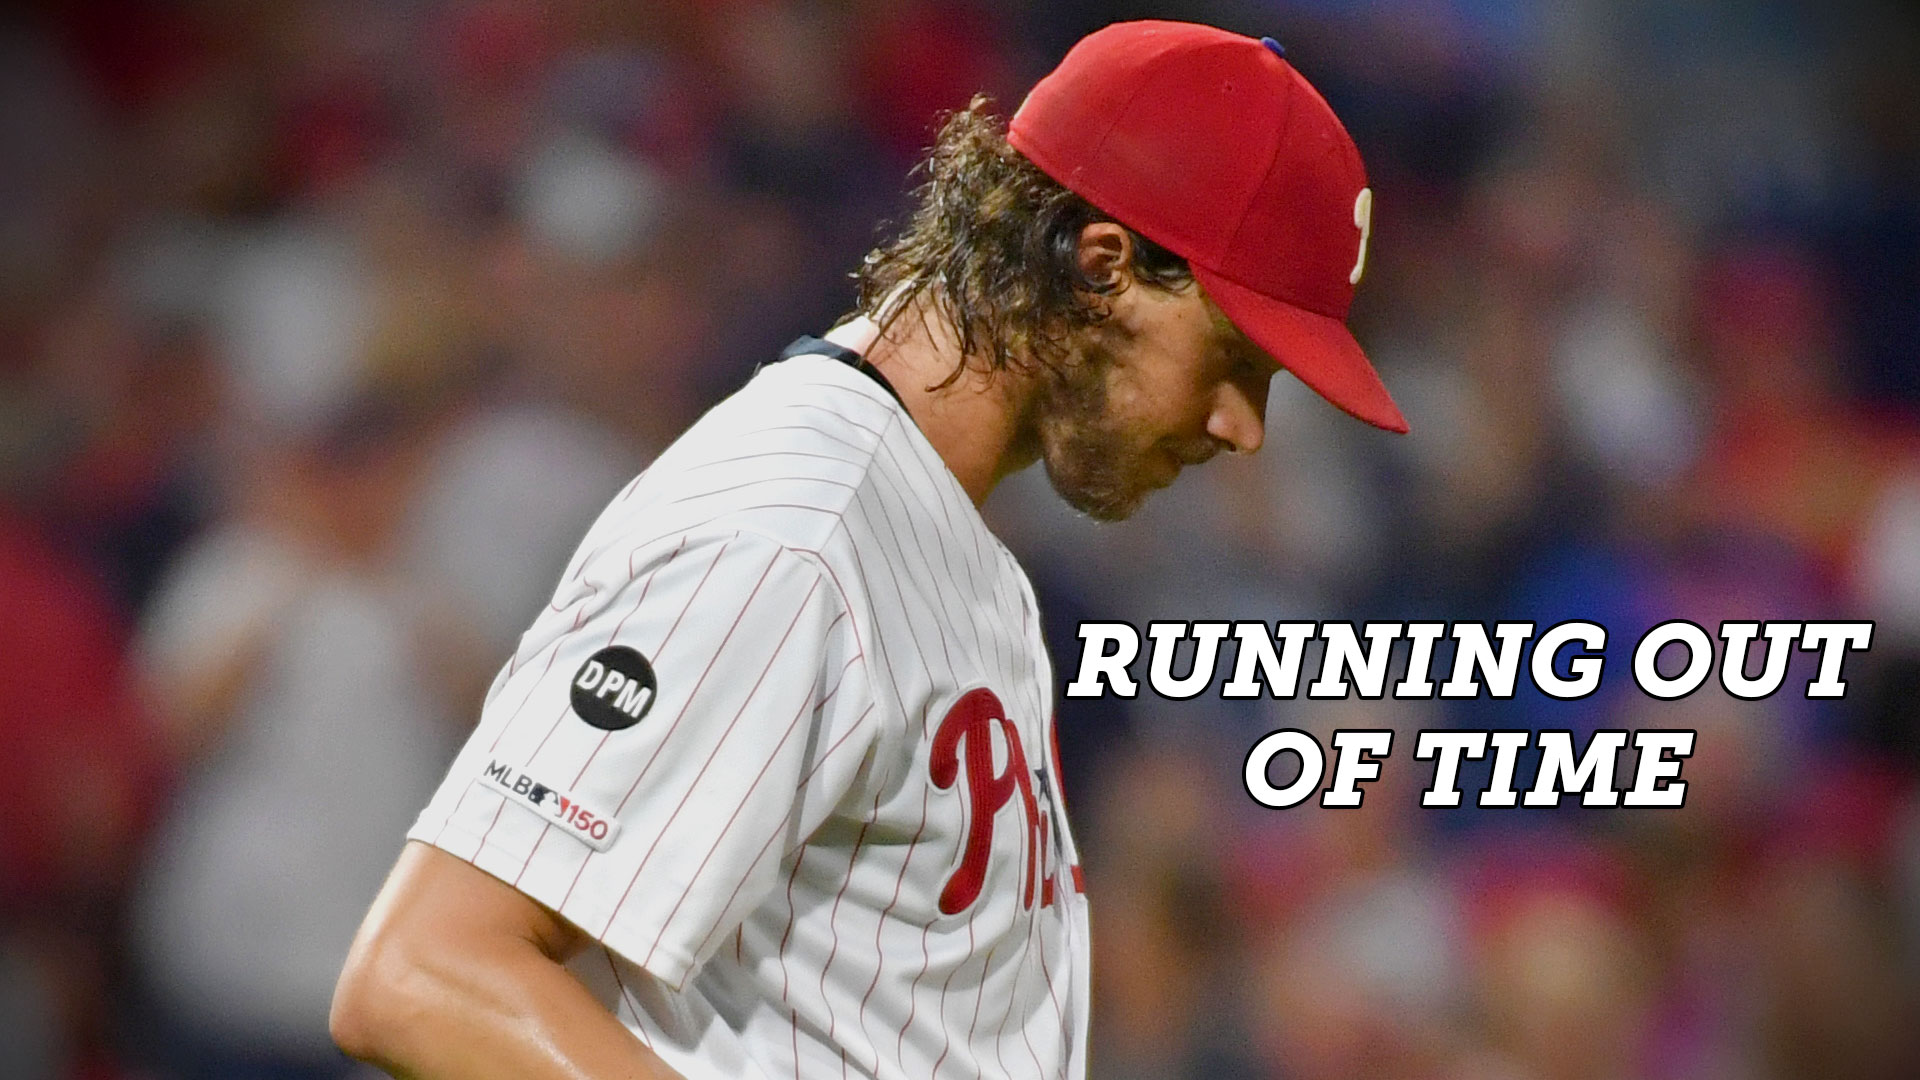 Phils socked by late inning sac fly on a great Aaron Nola night